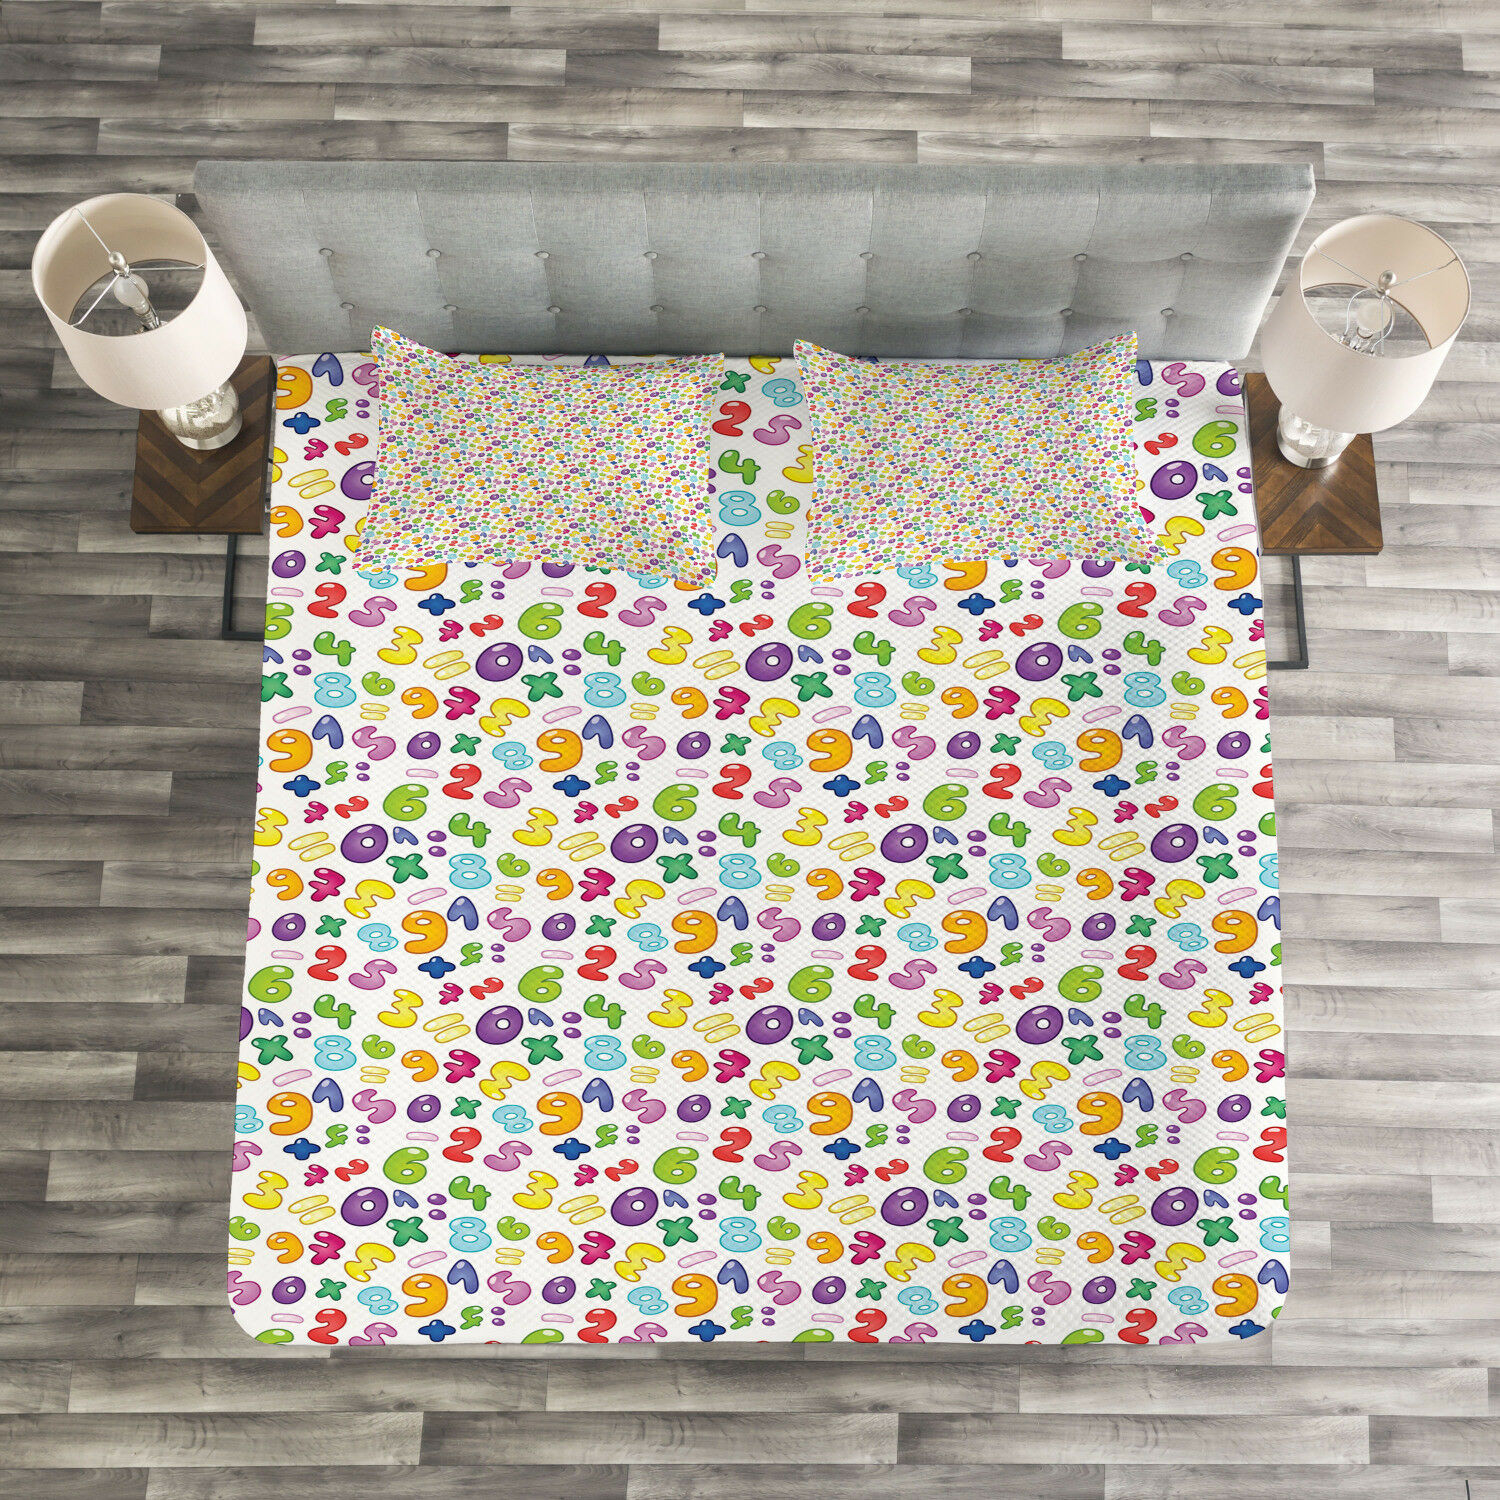 Numbers Quilted Bedspread & Pillow Shams Set, colorful Bubble Style Print